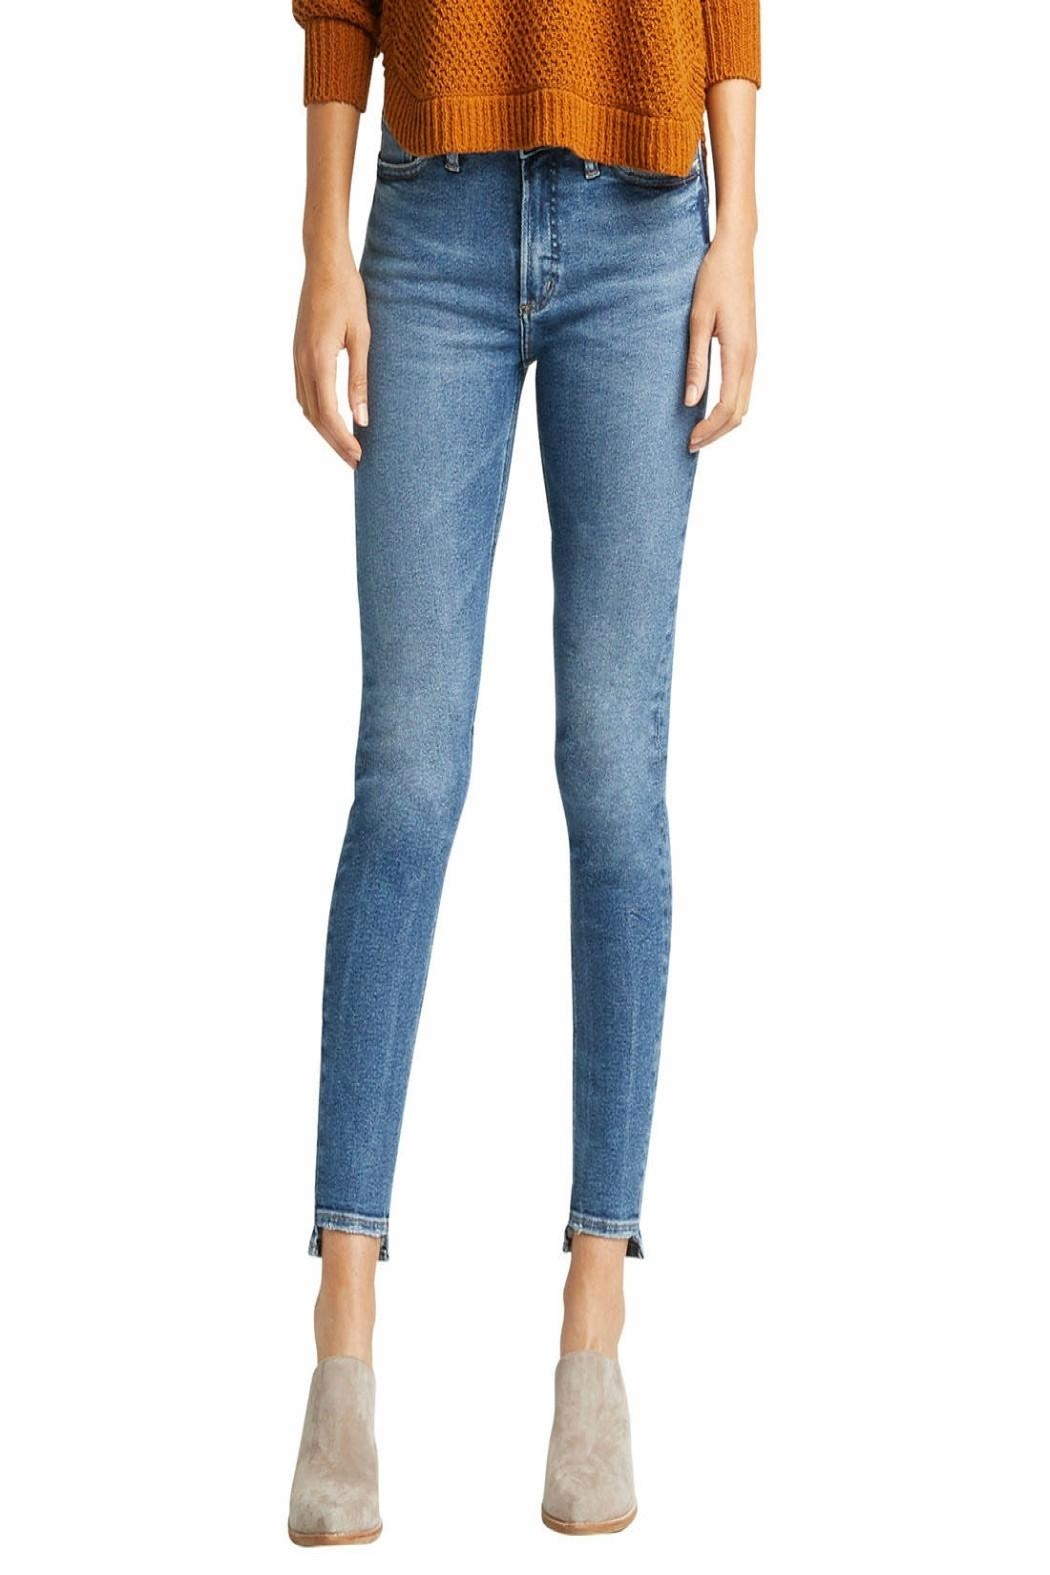 Silver Jeans Co. Most Wanted Skinny - Main Image